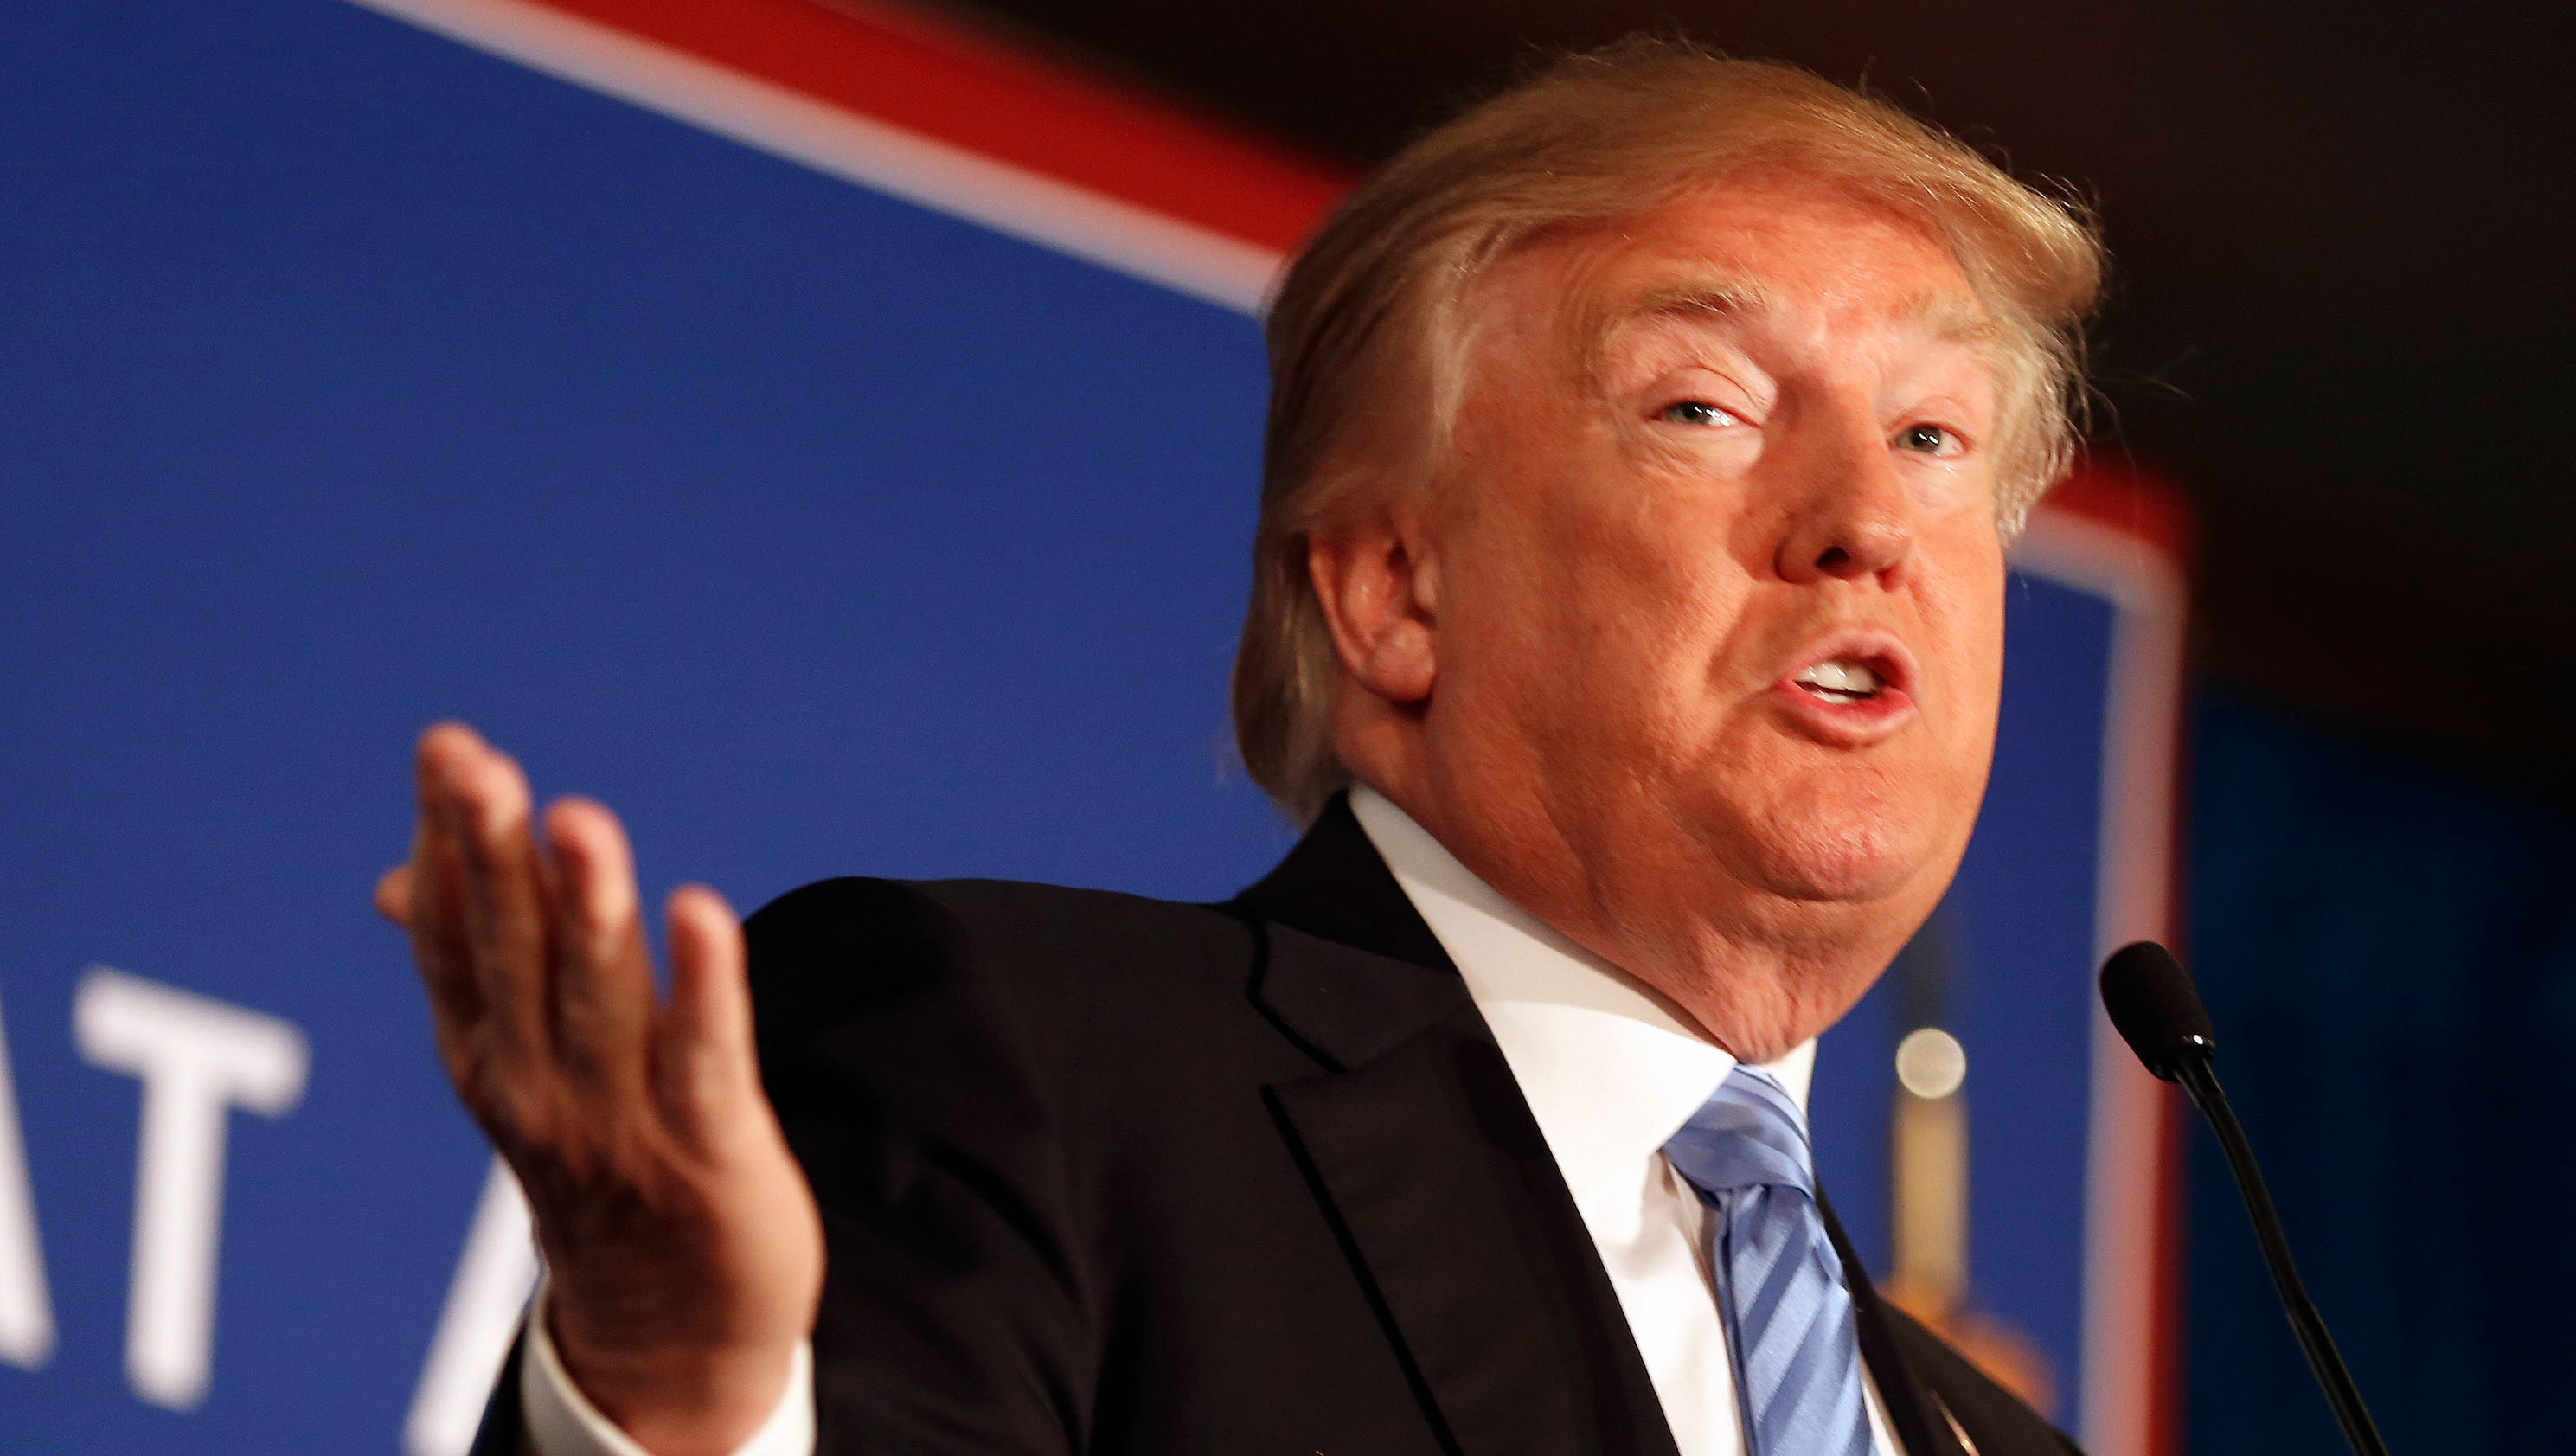 White nationalists urge support for Donald Trump in Iowa